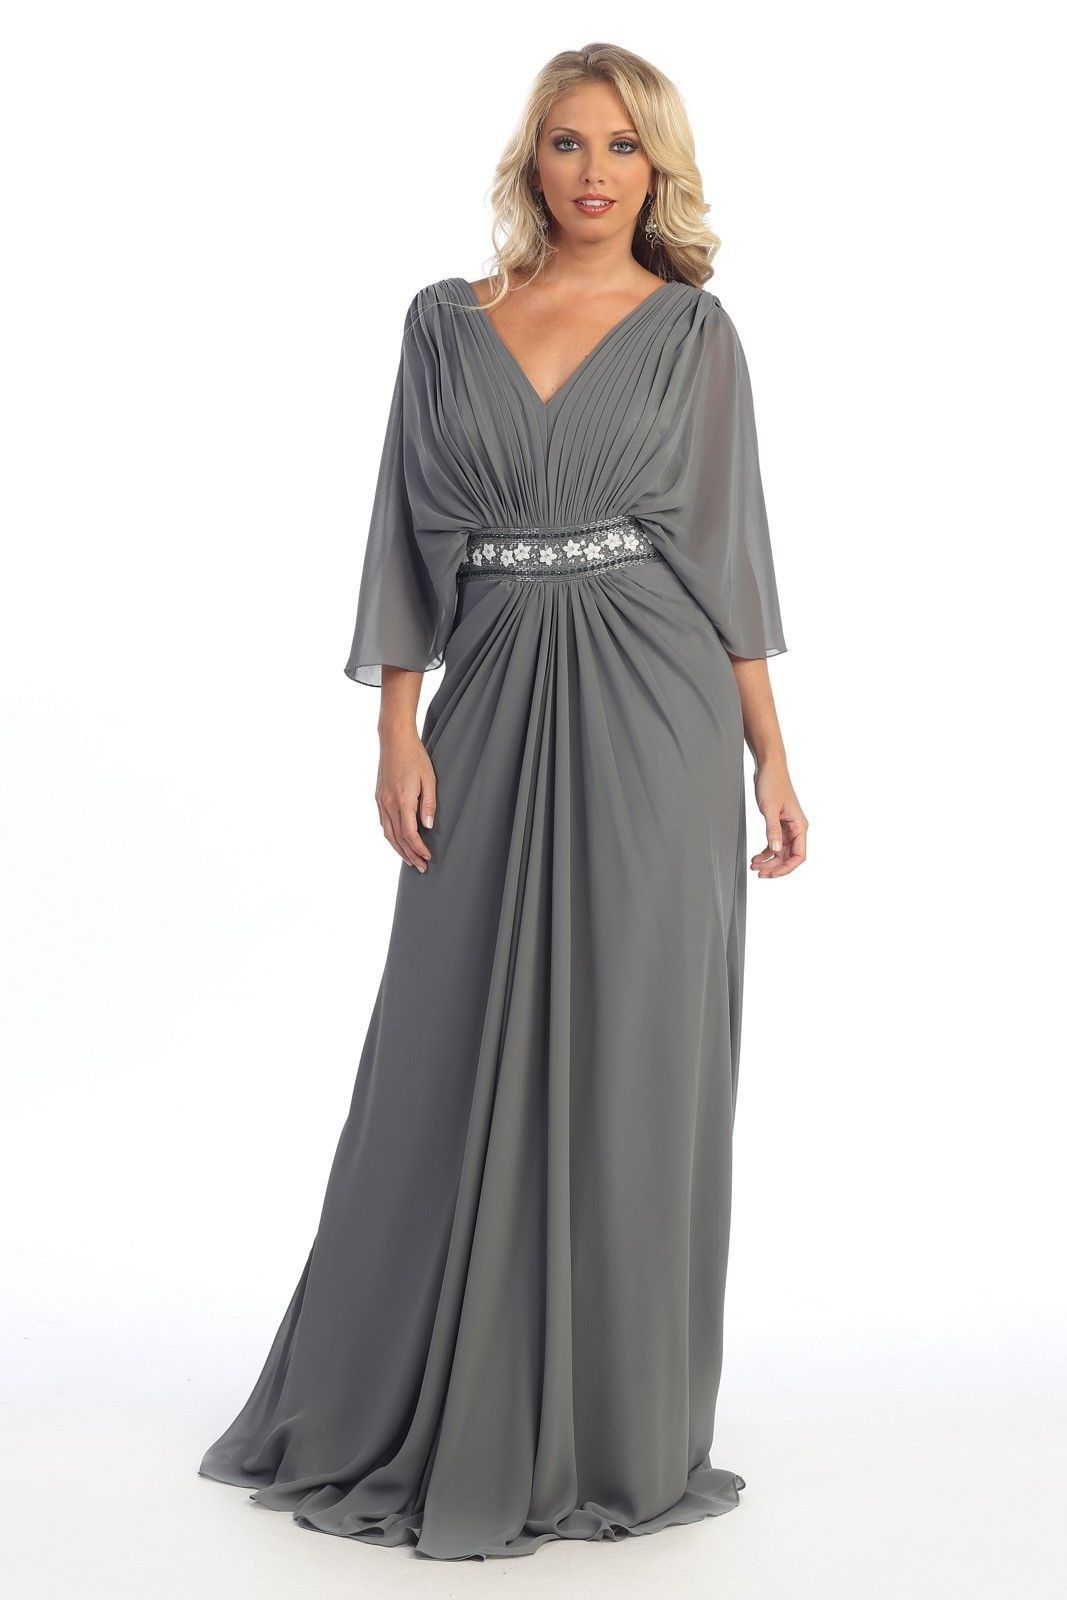 20 Best Plus Size Prom Dresses To Choose Formal Gray Dress And Gray